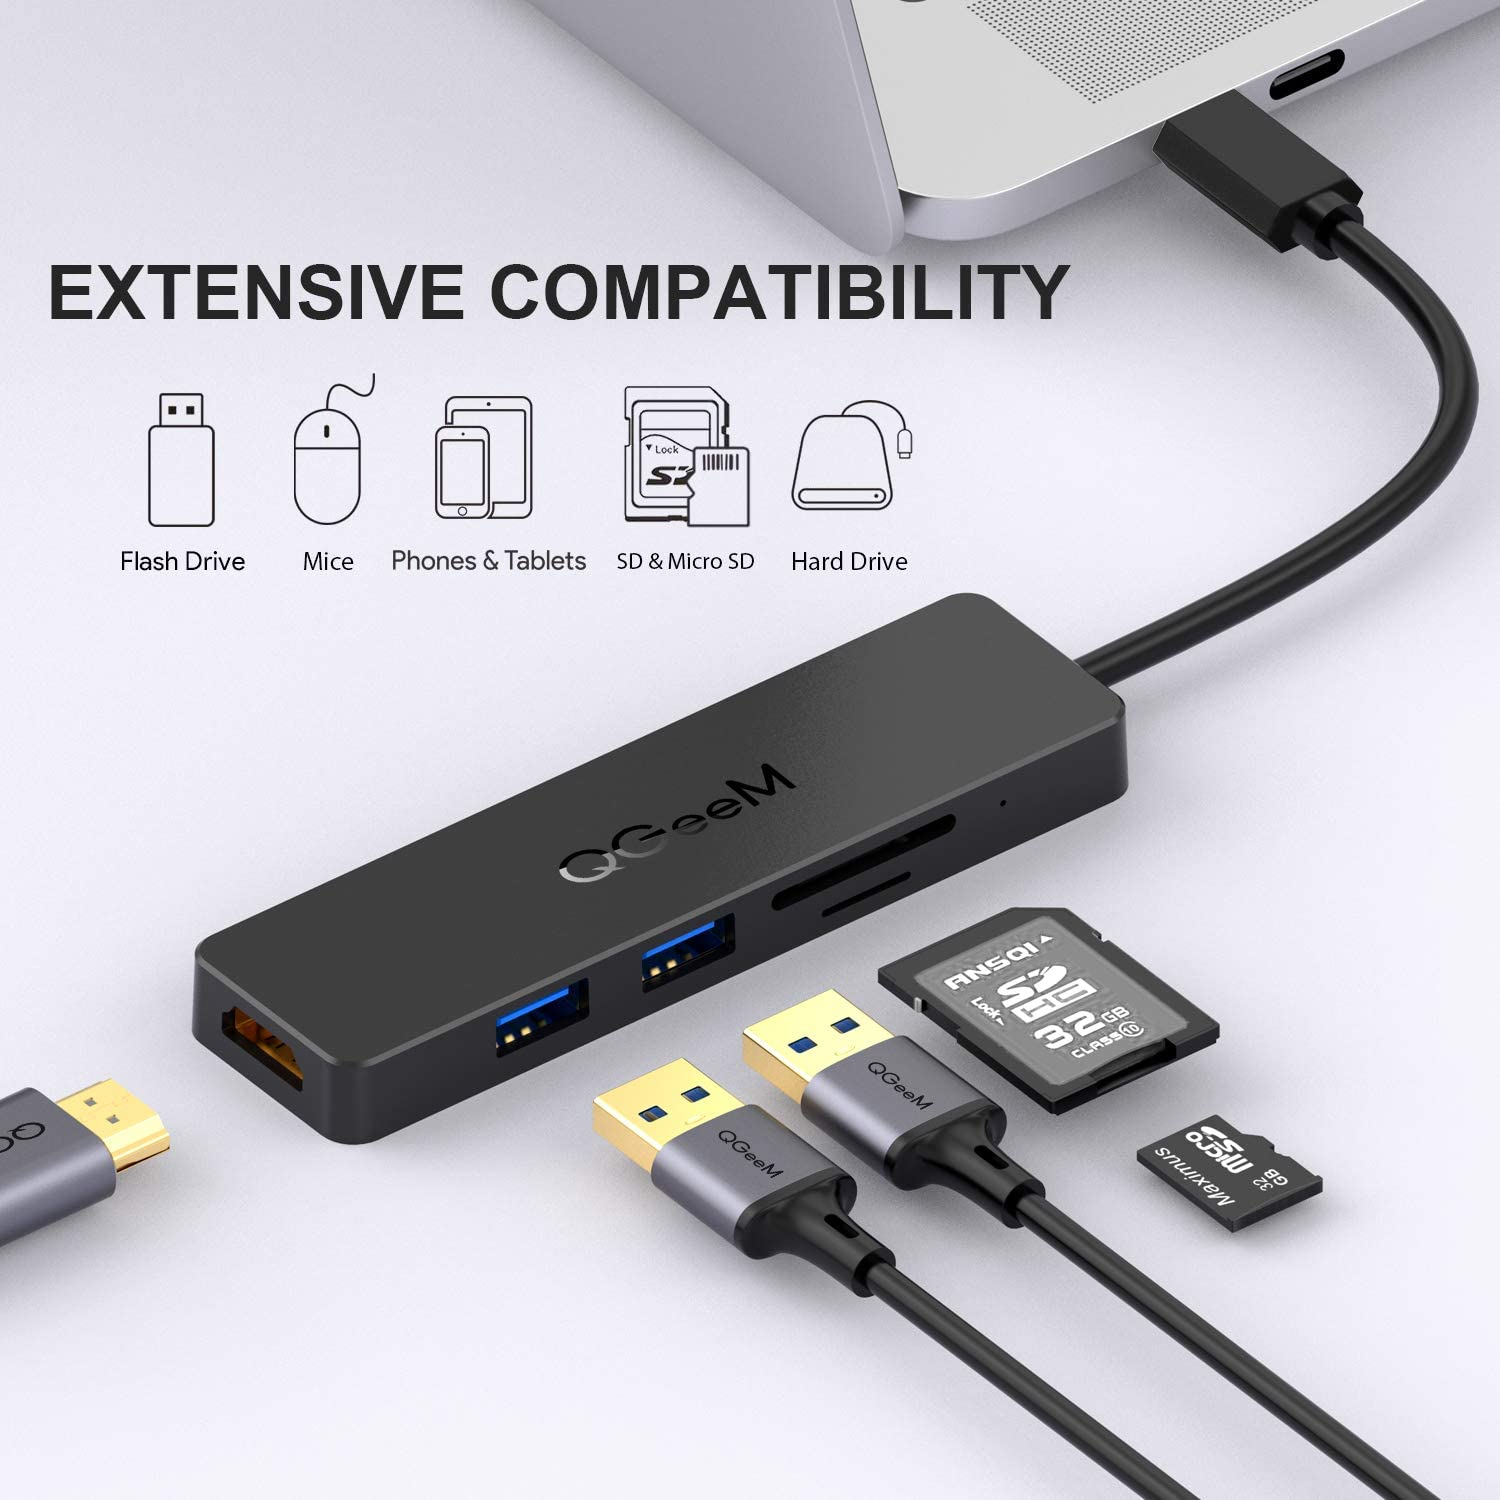 USB C Hub,QGeeM 5 in 1 USB C to HDMI 4K Adapter,USB C to USB 3.0,Type C SD/TF Card Reader,USB to HDMI,Compatible with MacBook Pro 2018 ipad Pro, ChromeBook, Dell XPS, Surface Go